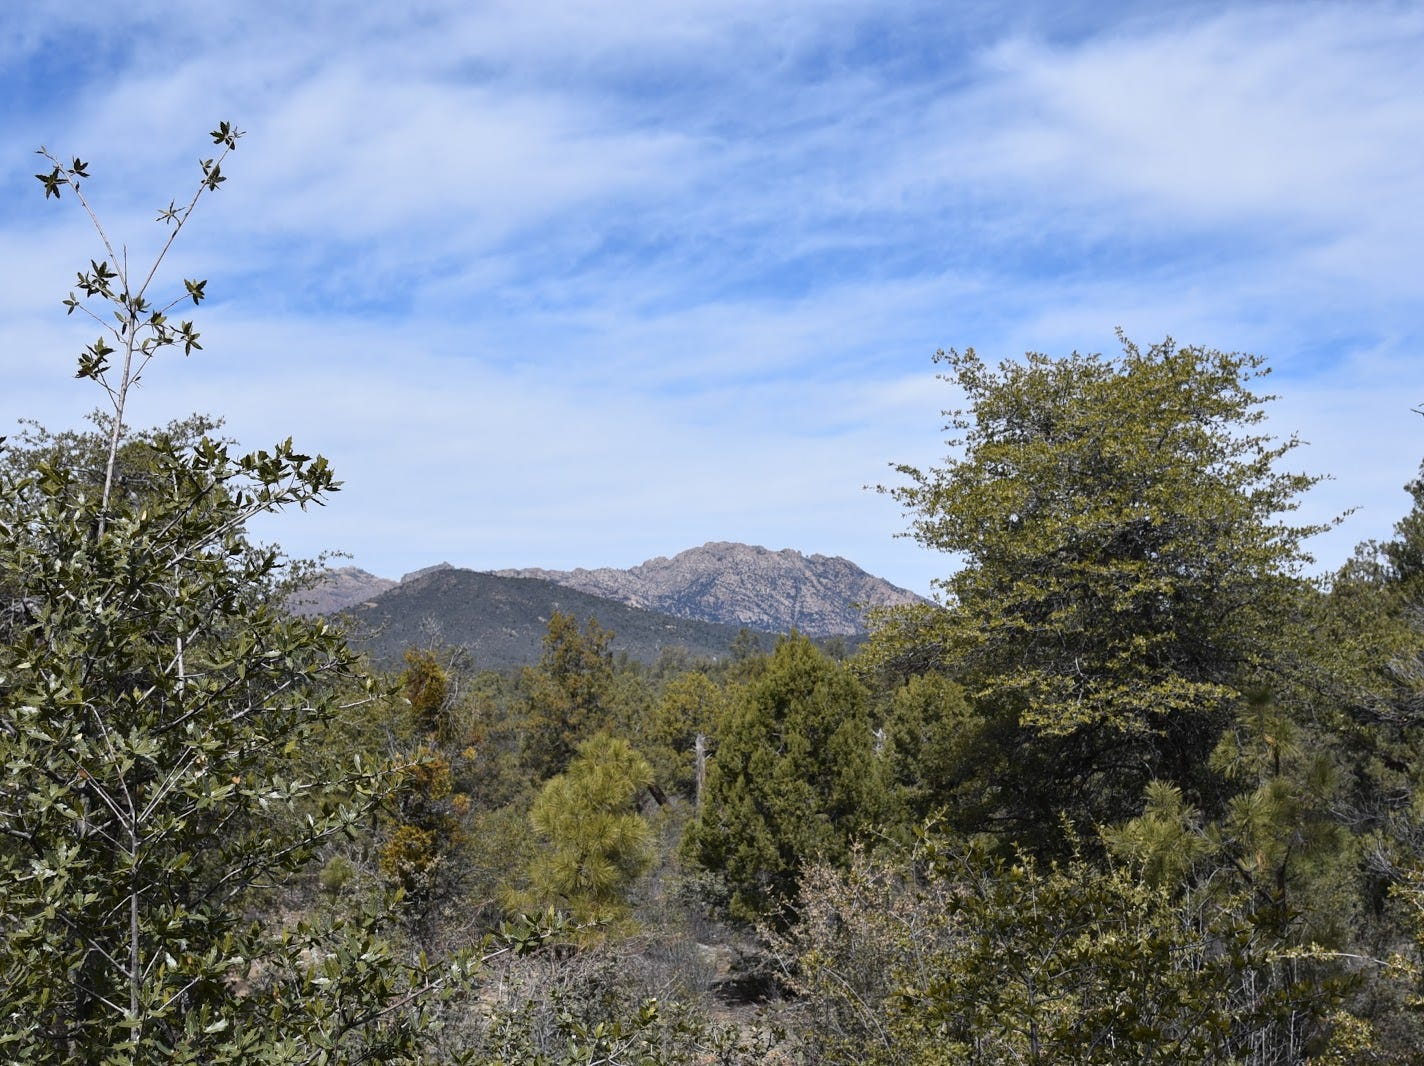 Granite Mountain seen from the Firewater Trail.